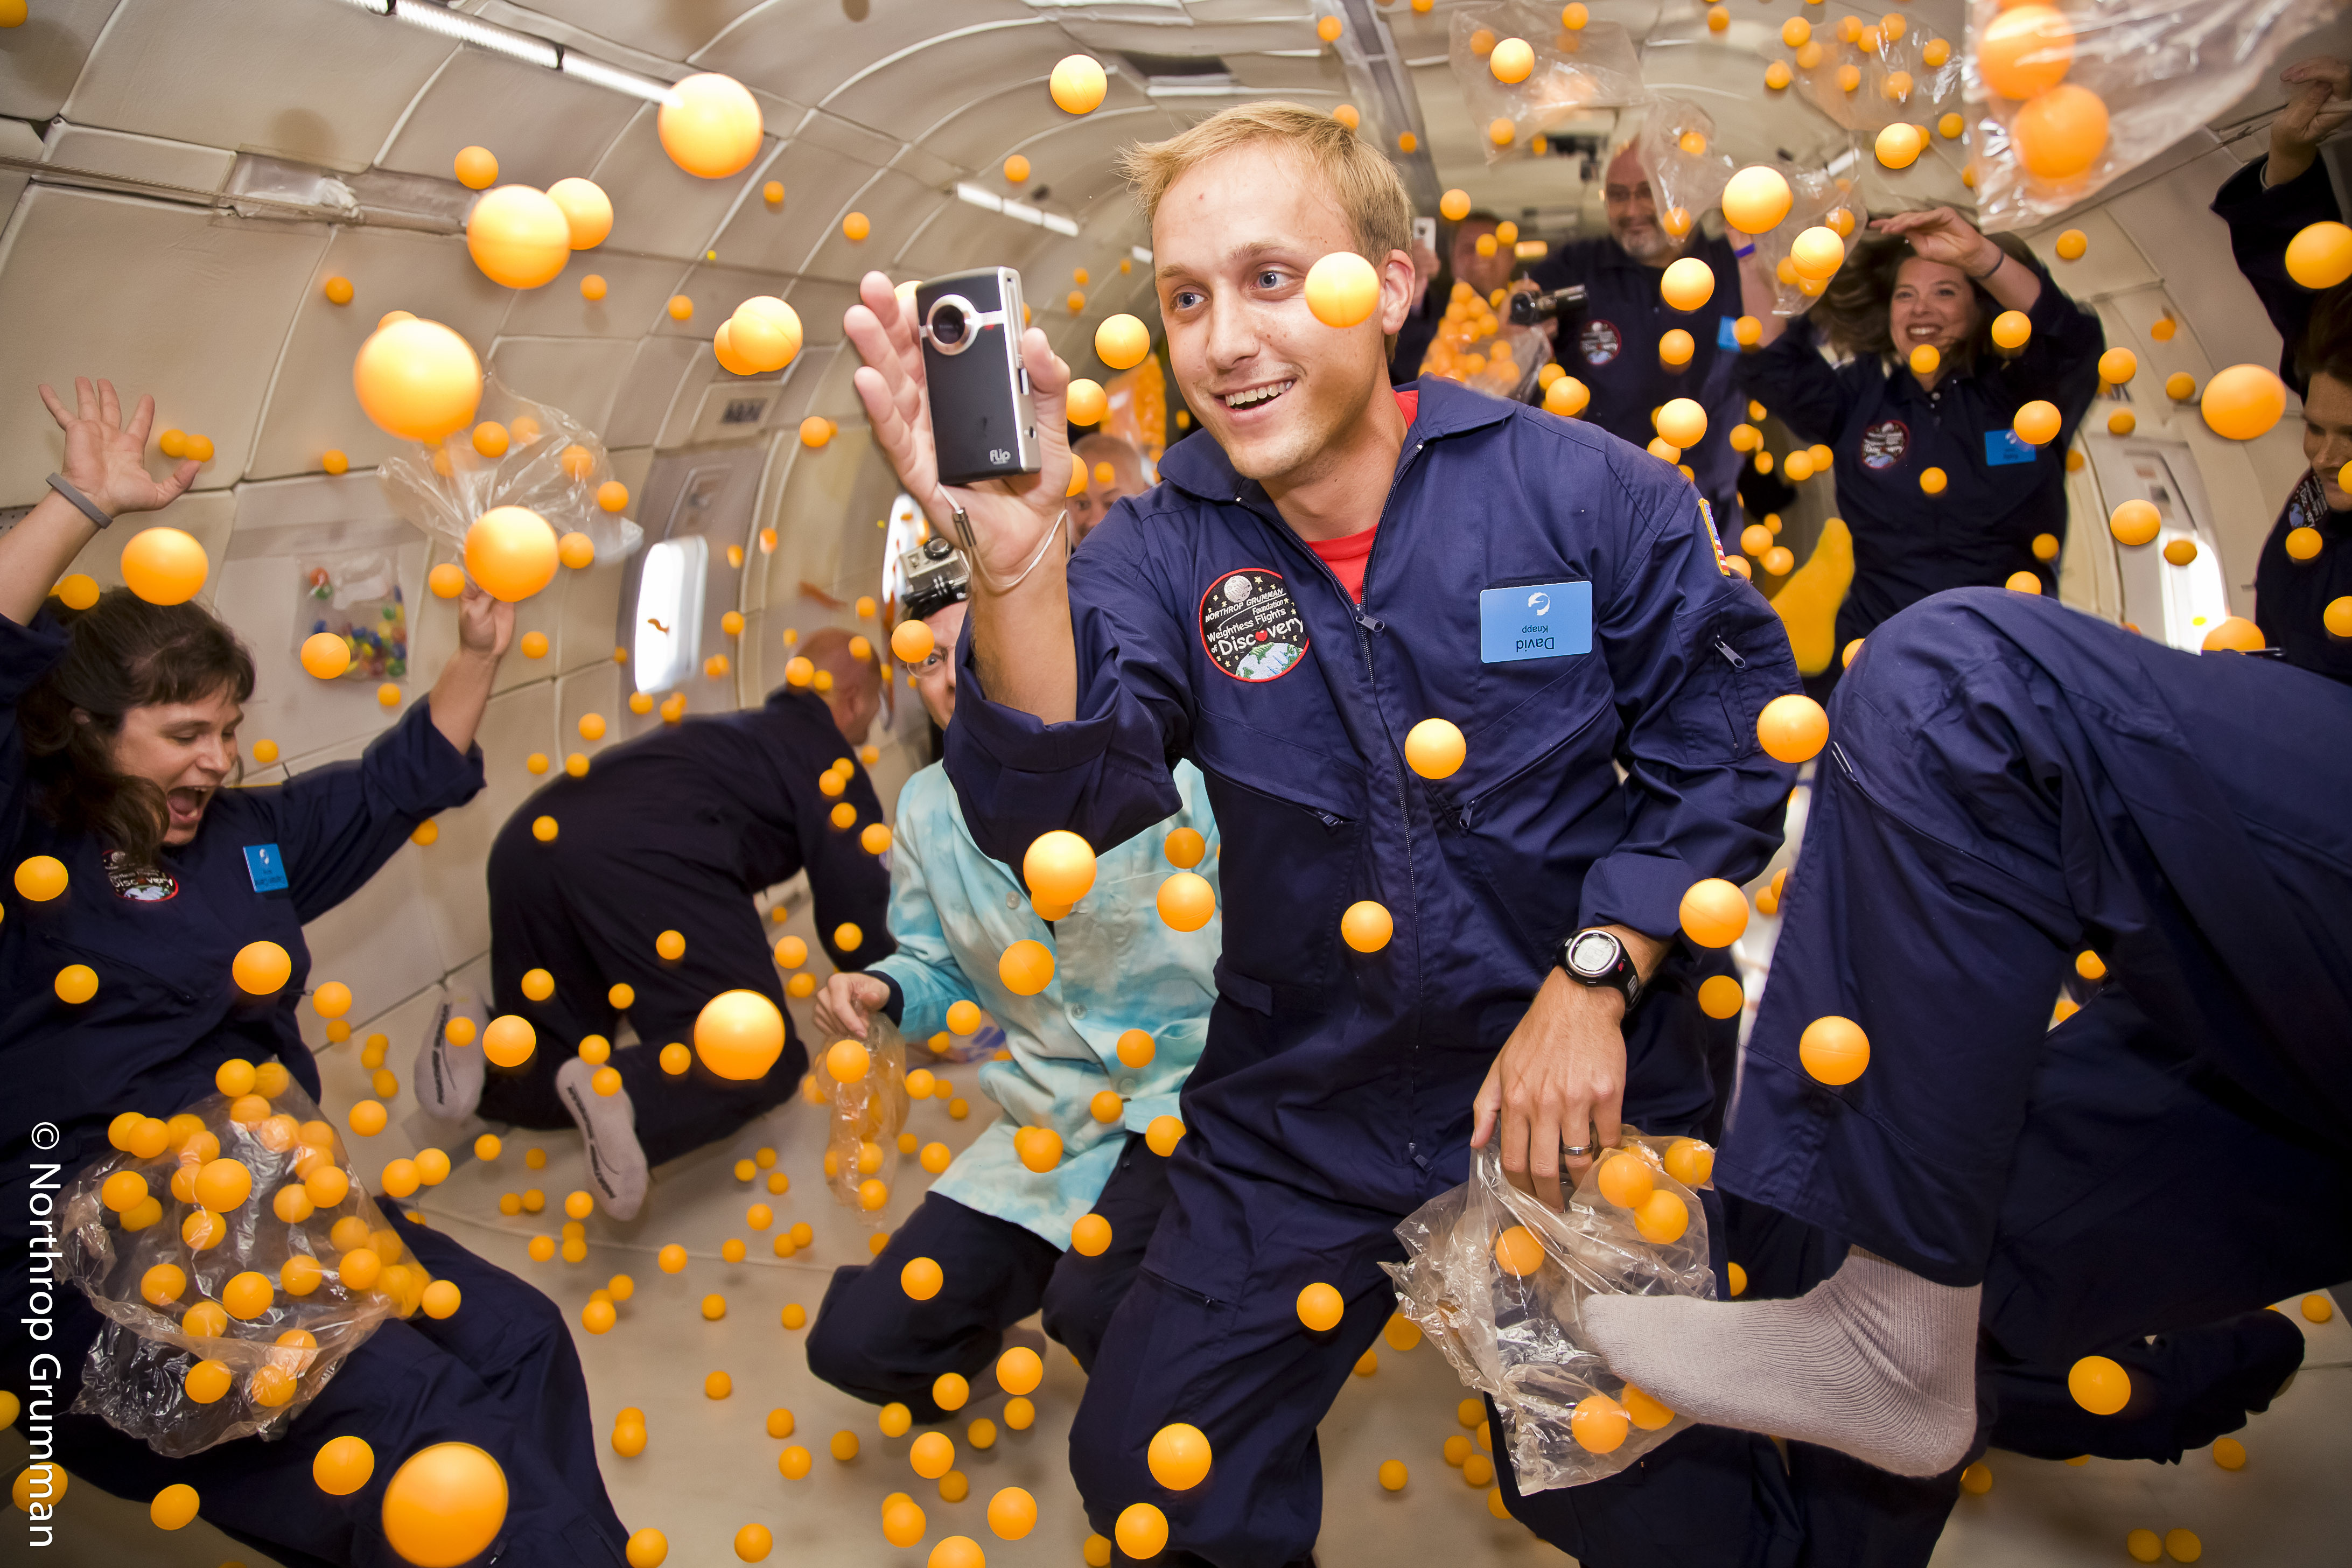 astronauts in space weightless - photo #33